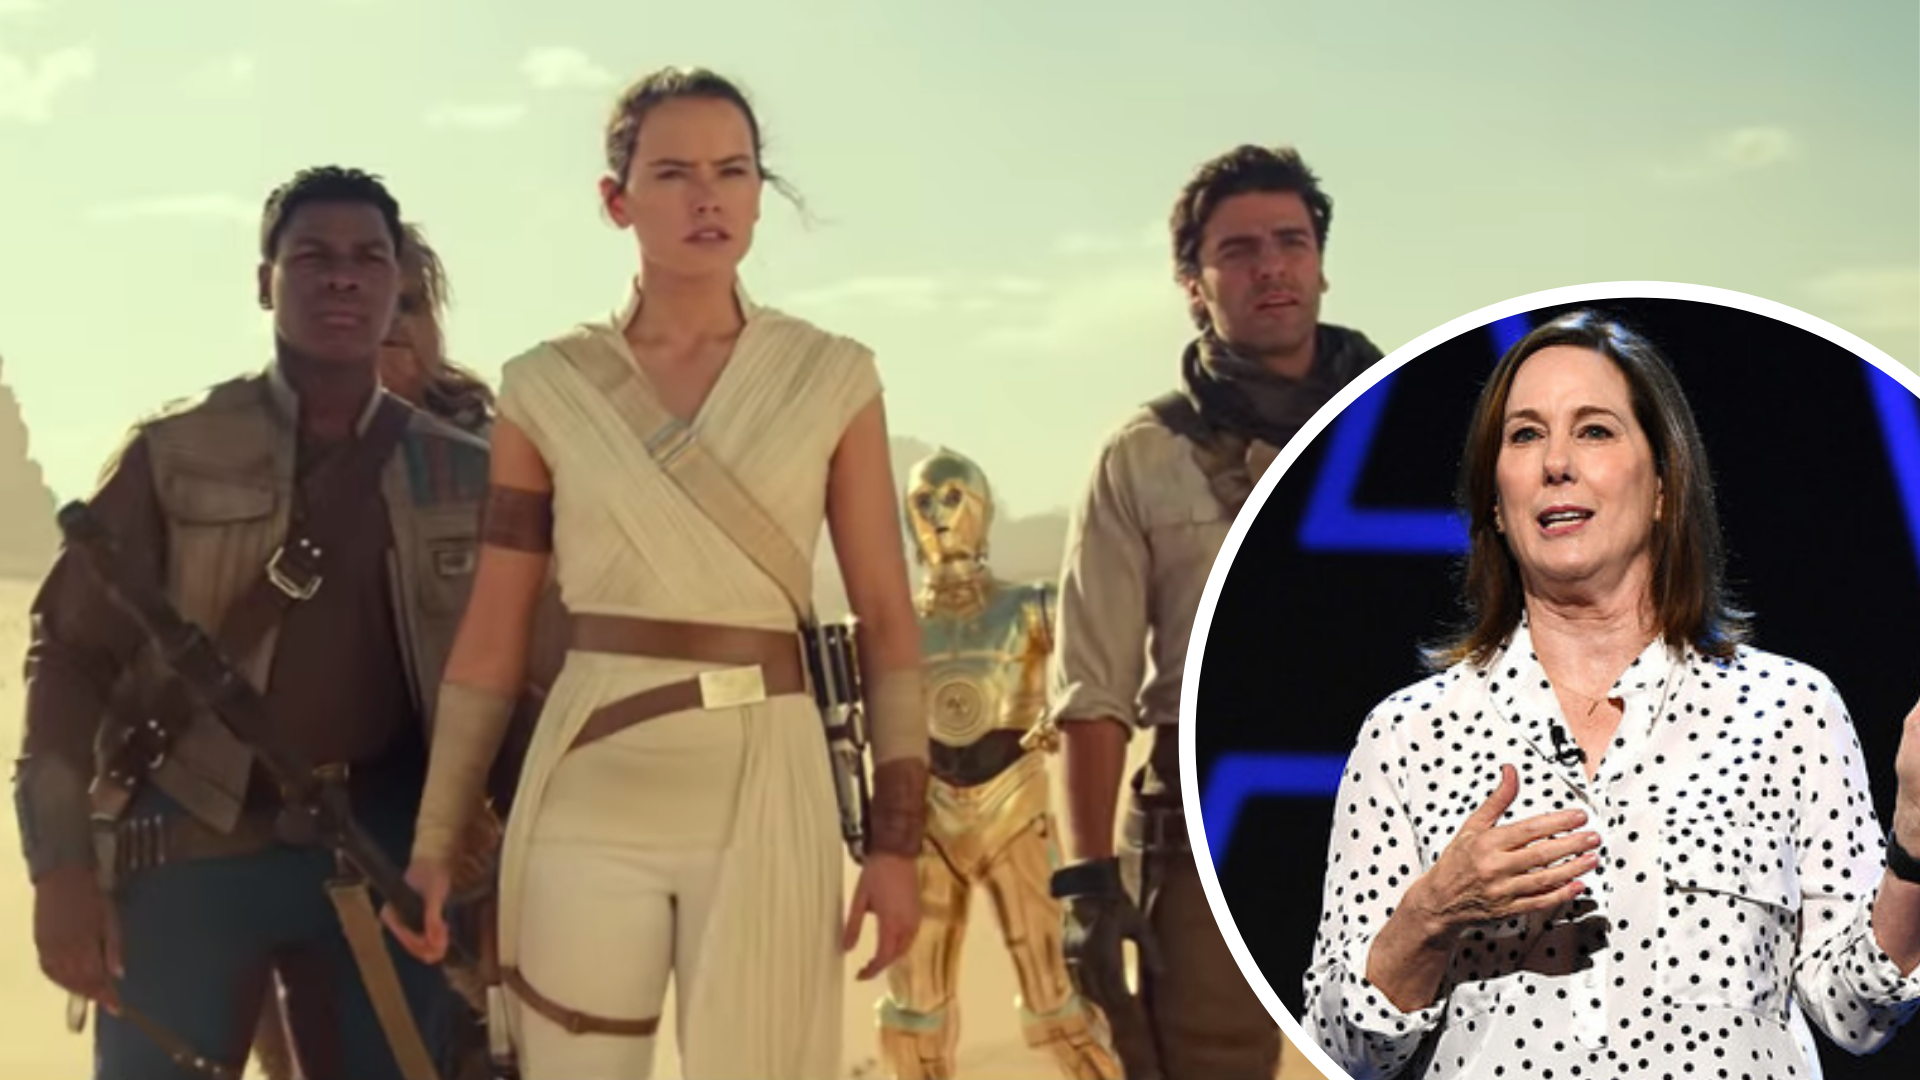 Star Wars: The Rise of Skywalker producer talks fan feedback and career highlights